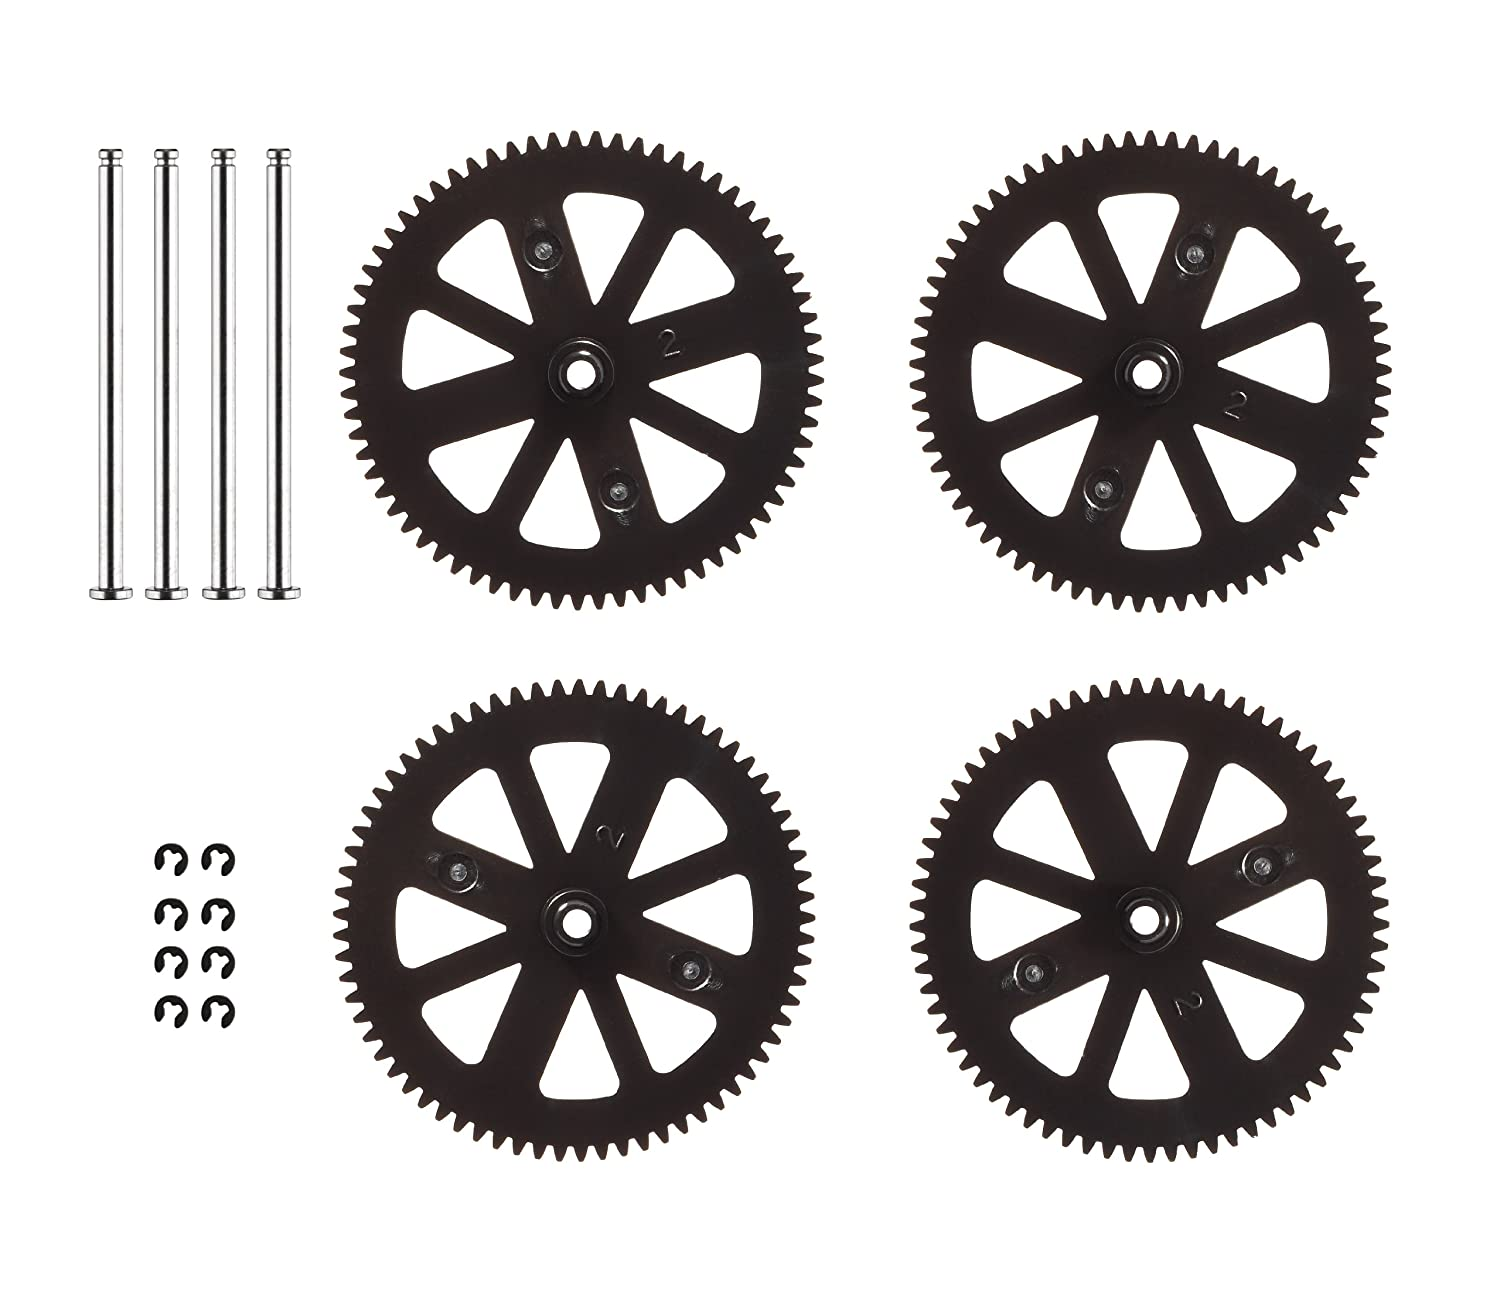 Parrot PF070047AA AR.Drone 2.0 Gears and Shaft Set (Discontinued by Manufacturer) Parrot Inc.